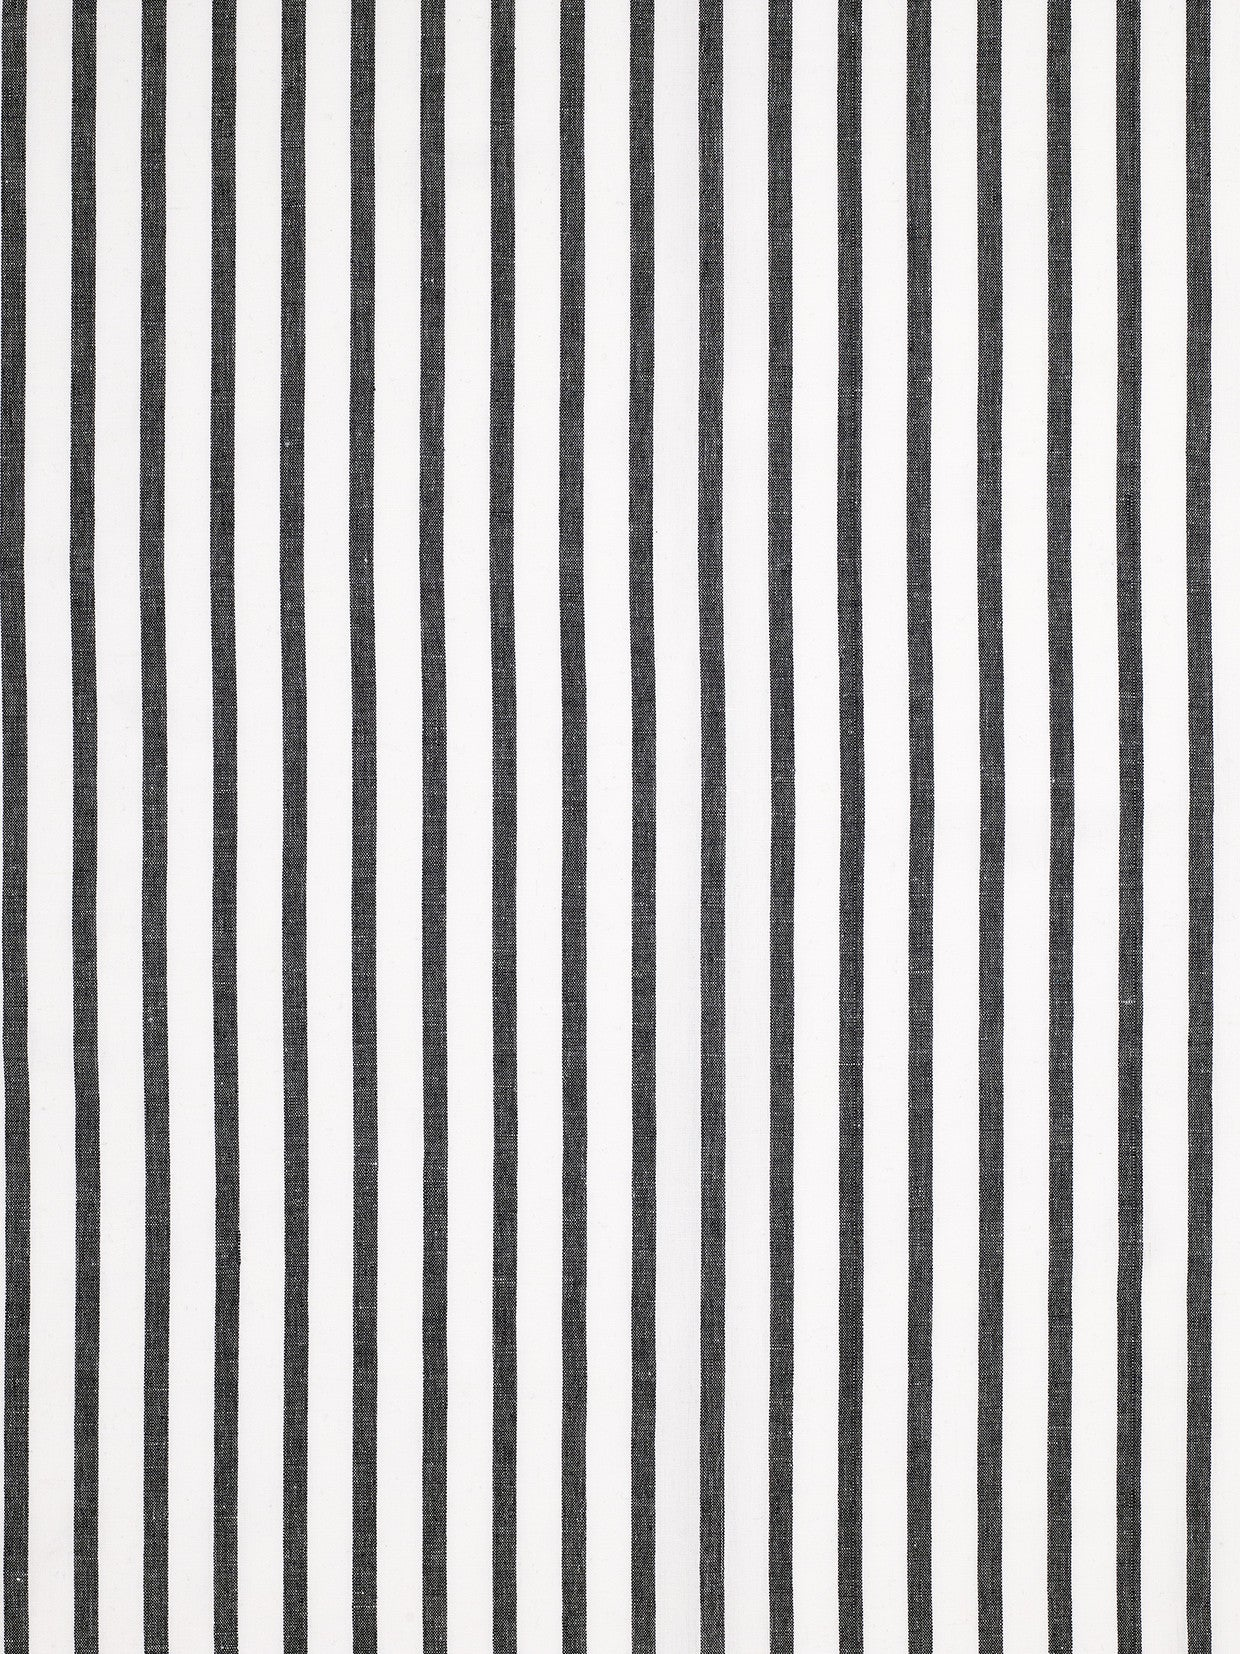 Autumn Ticking Stripe Cotton Linen Fabric by the Meter in Black